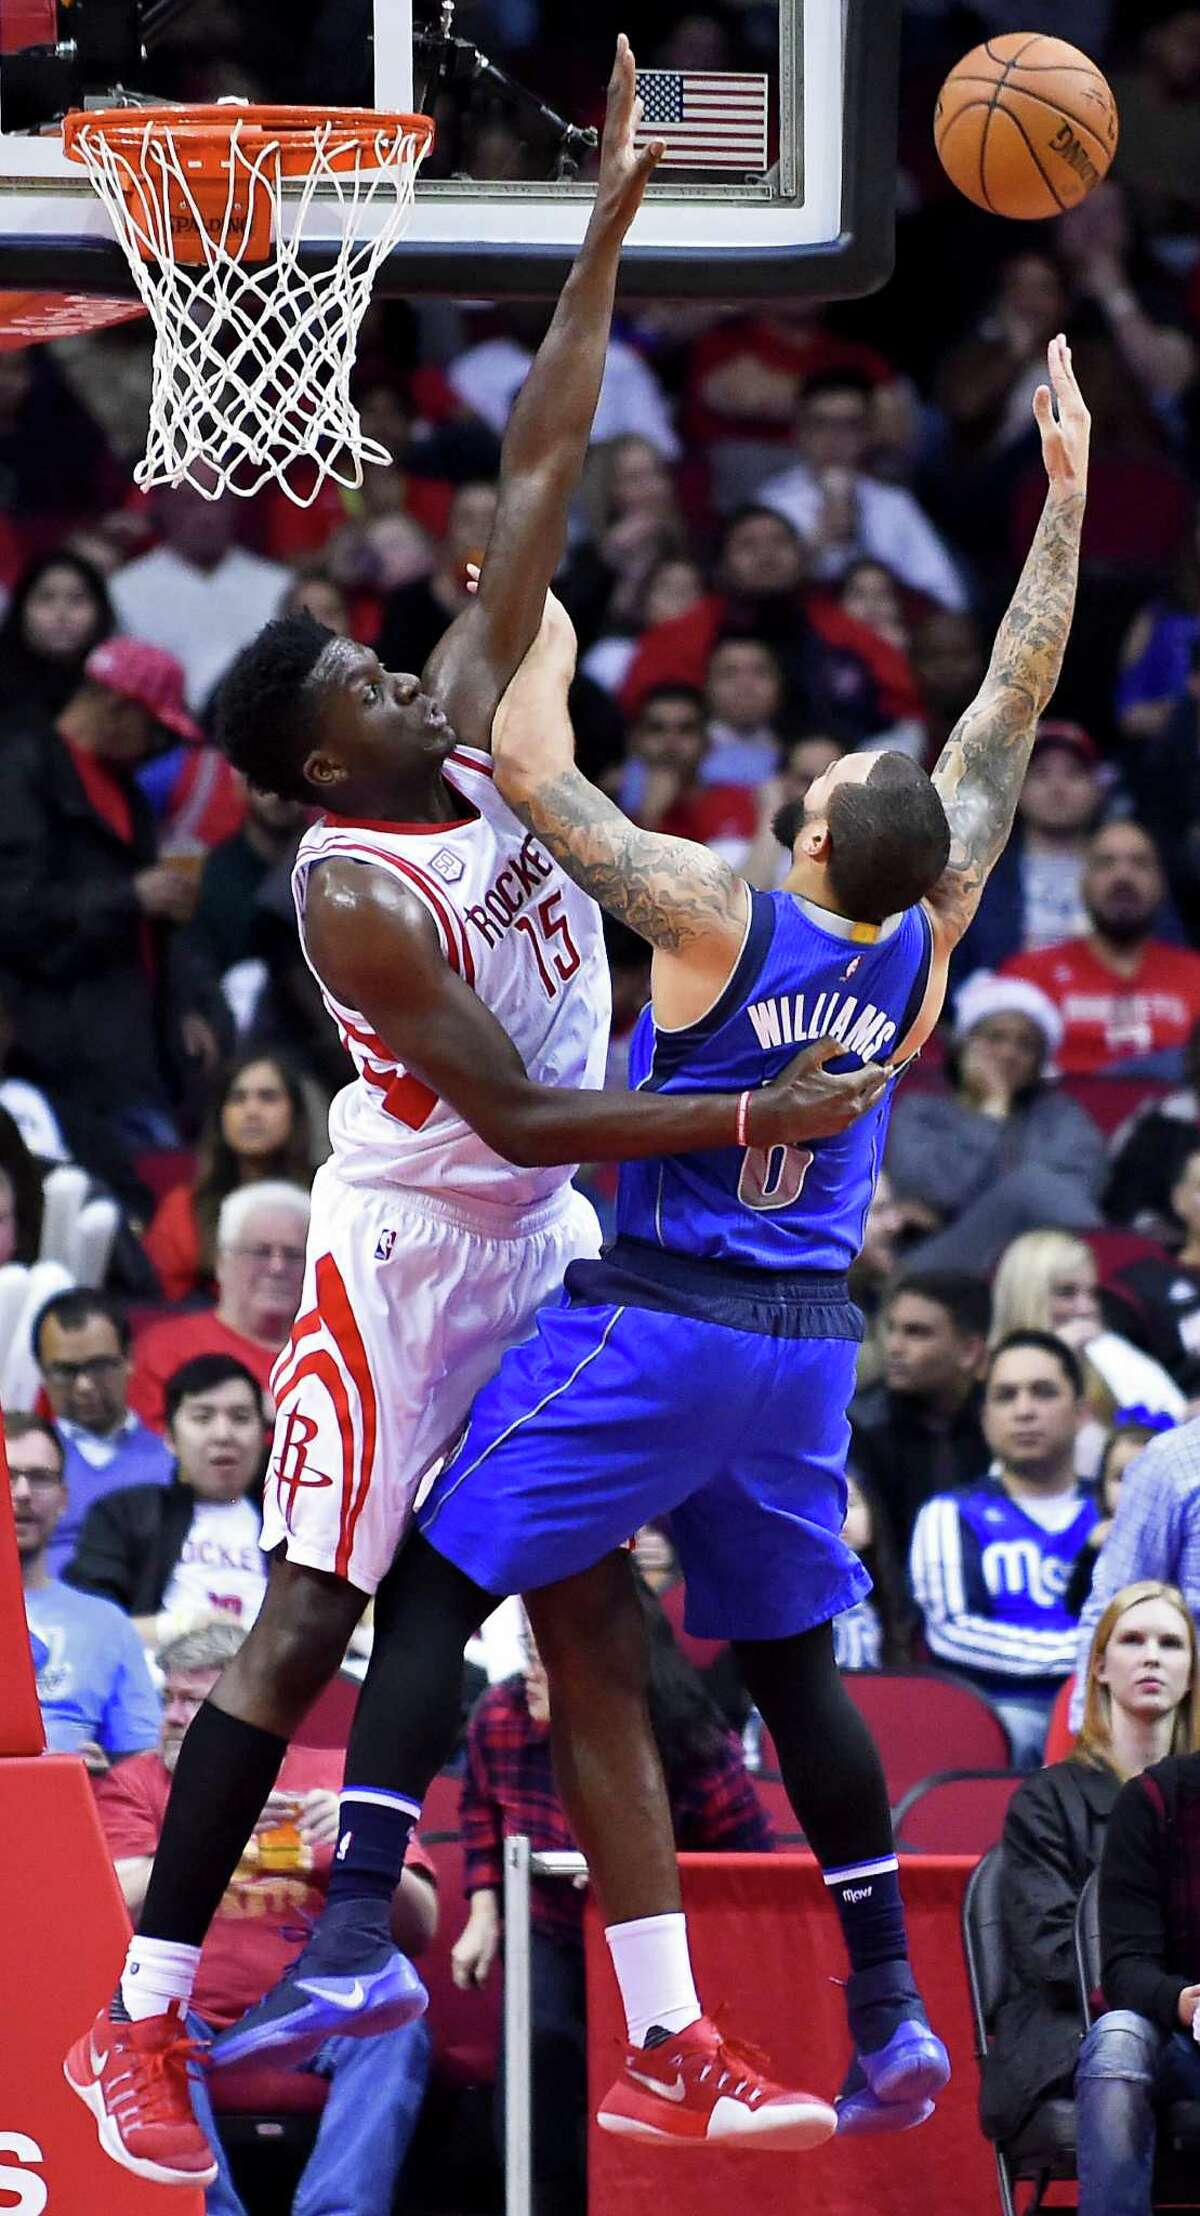 Dallas Mavericks guard Deron Williams, right, and Houston Rockets center Clint Capela fight for a rebound during the second half of an NBA basketball game, Saturday, Dec. 10, 2016, in Houston. Houston won 109-87. (AP Photo/Eric Christian Smith)